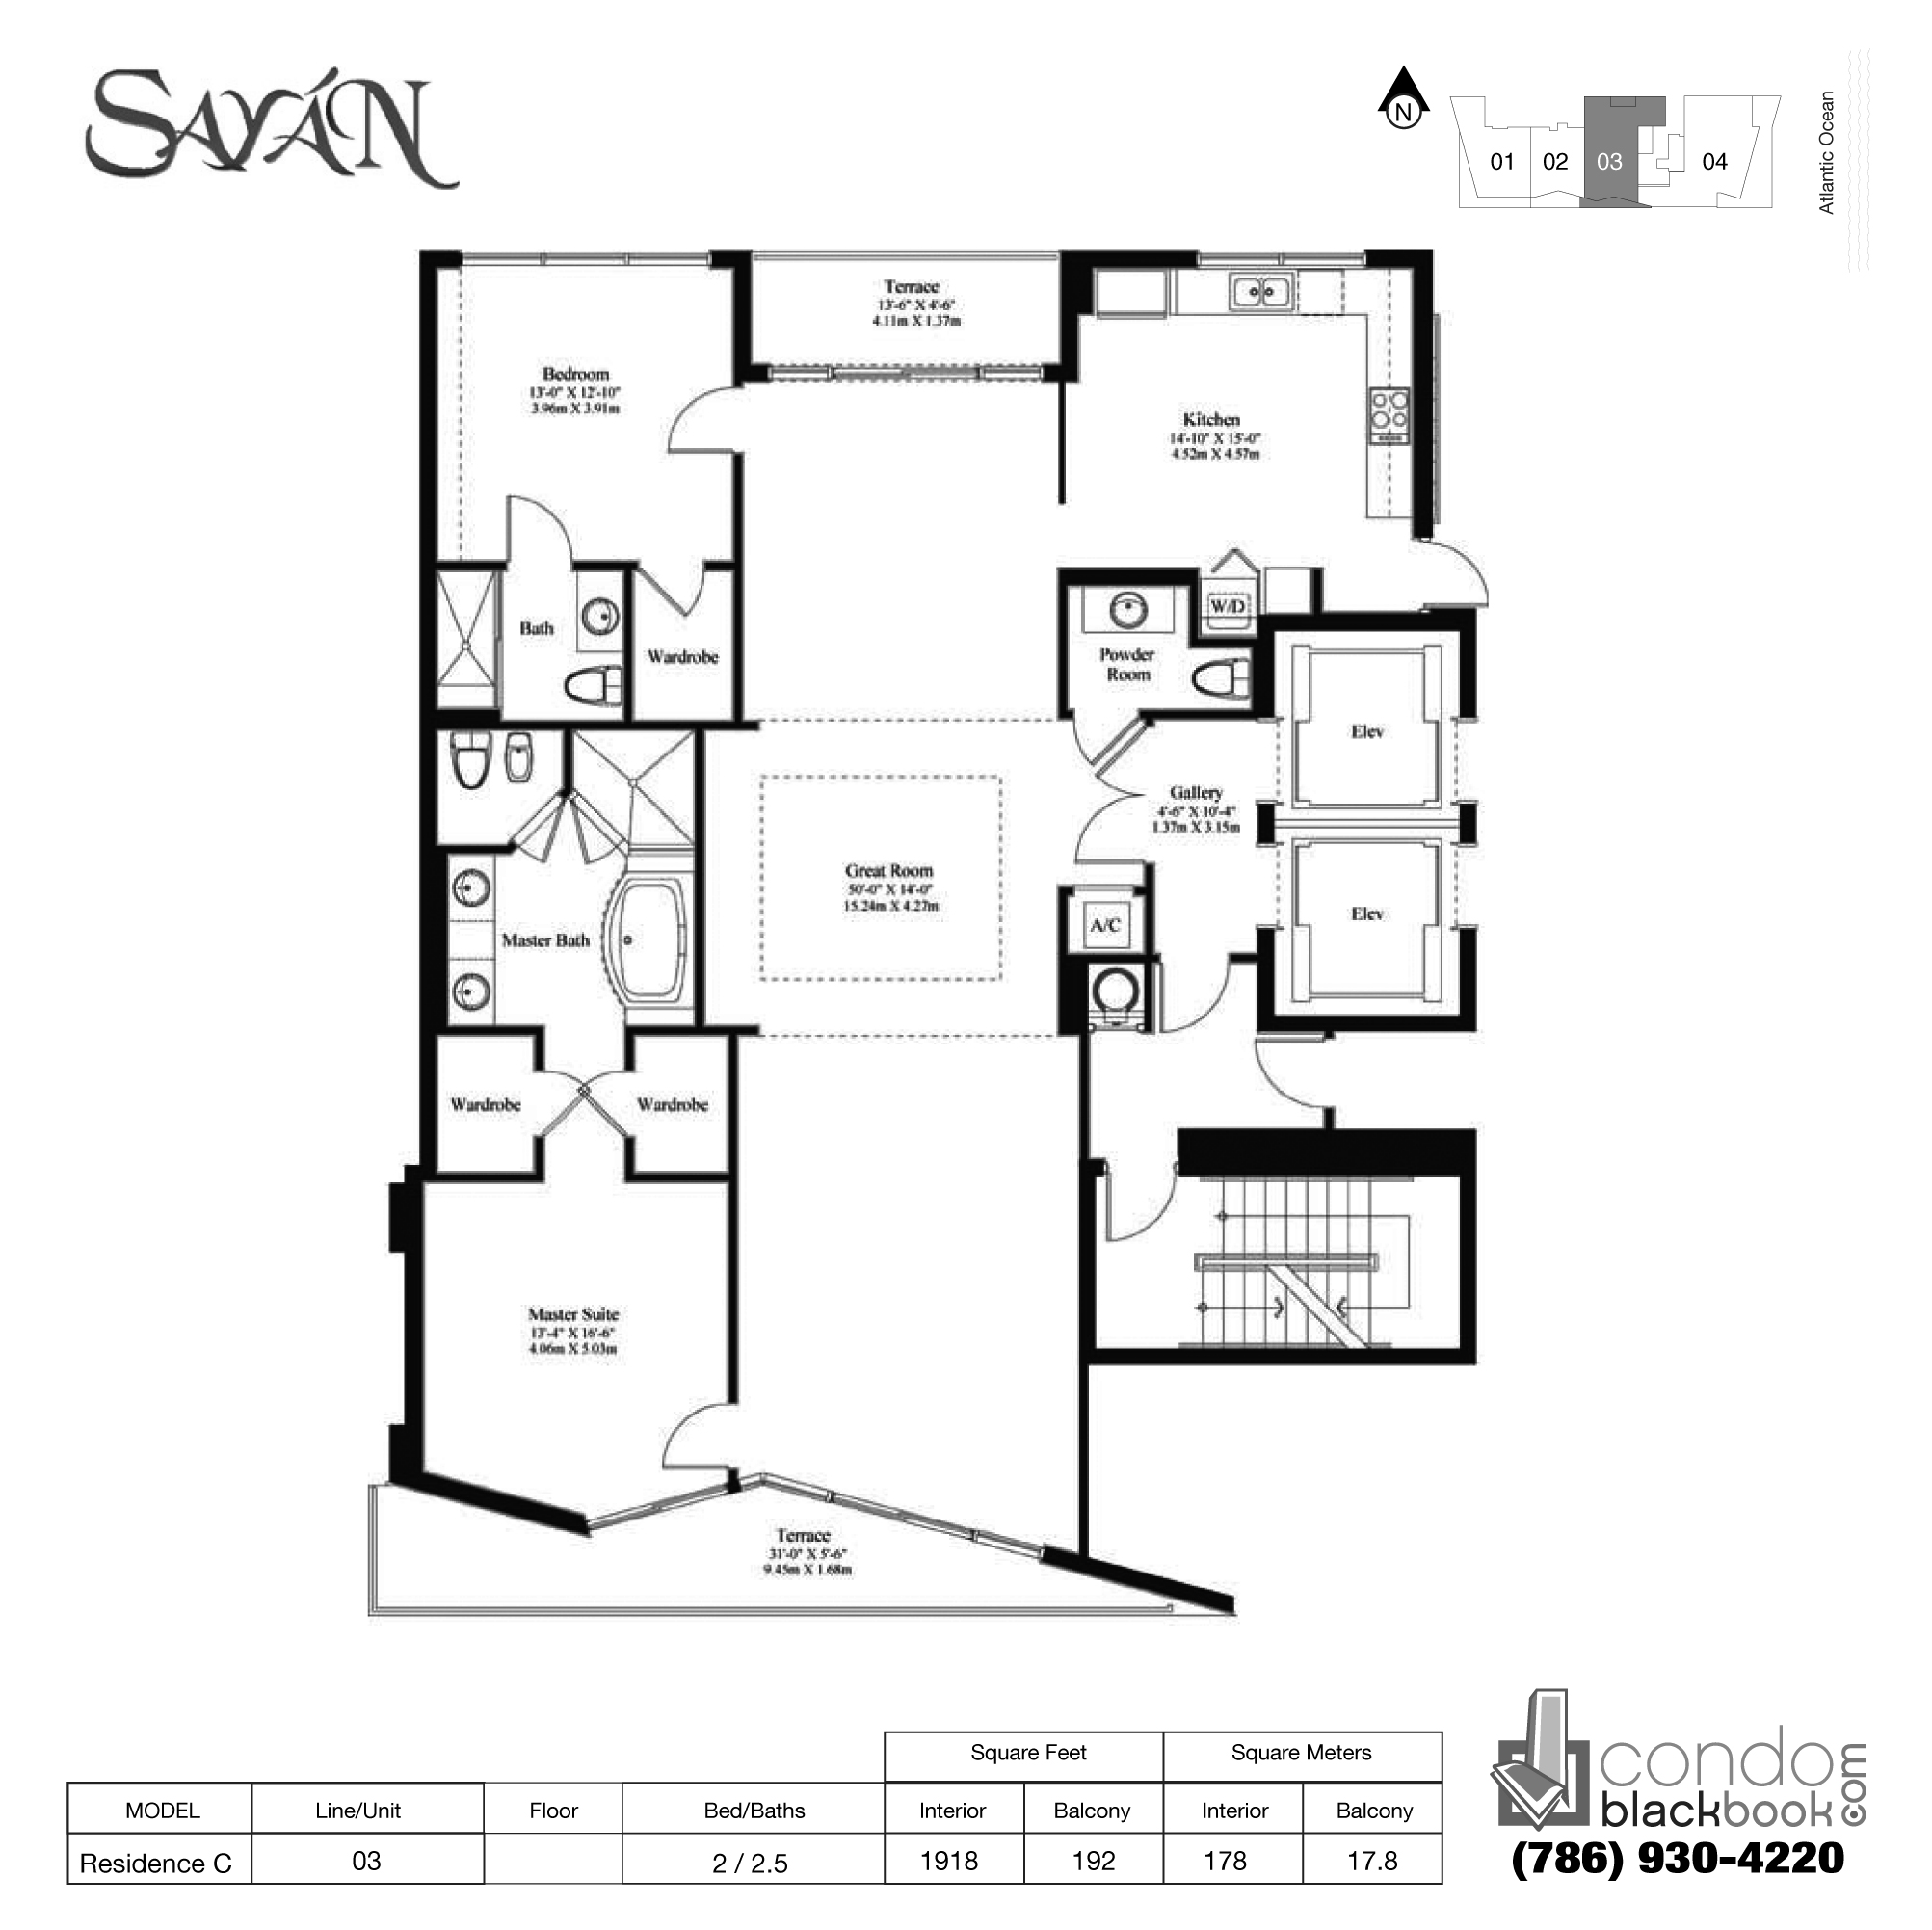 Floor plan for Sayan Sunny Isles Beach, model Residence C, line 03, 2 / 2.5 bedrooms, 1918 sq ft